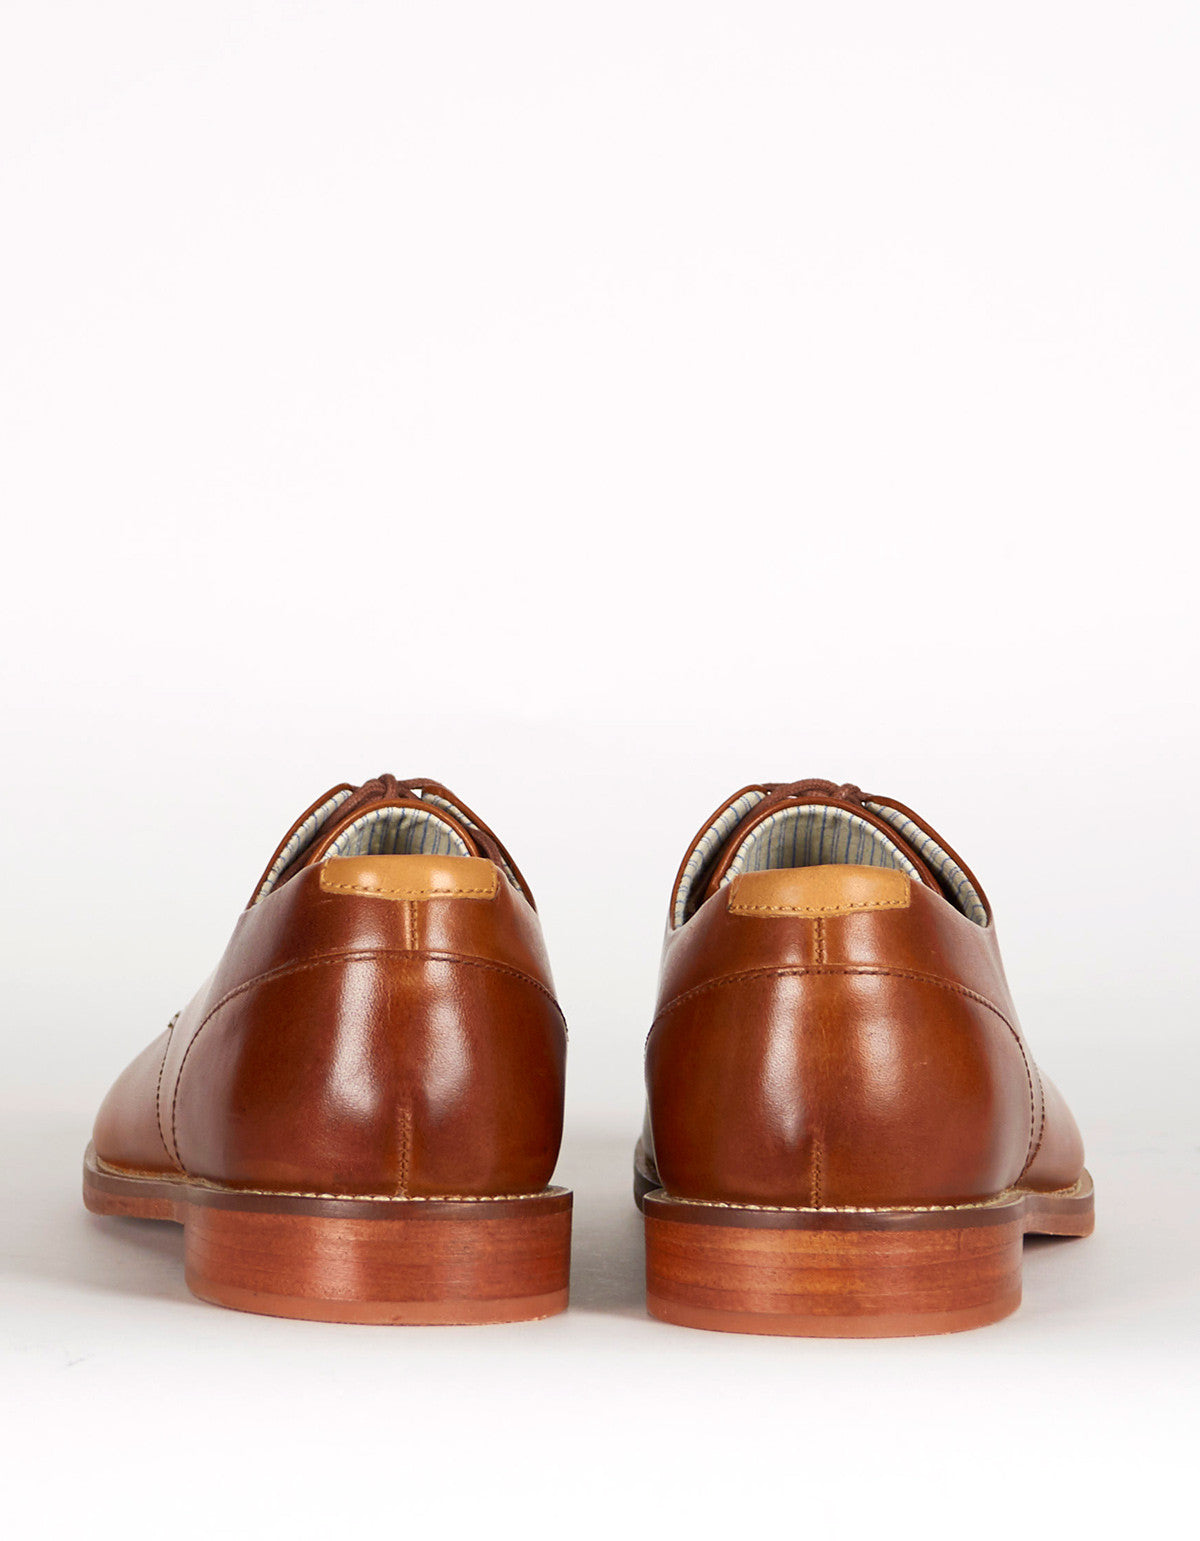 Https Www Jshoes Com Collections Mens Shoes